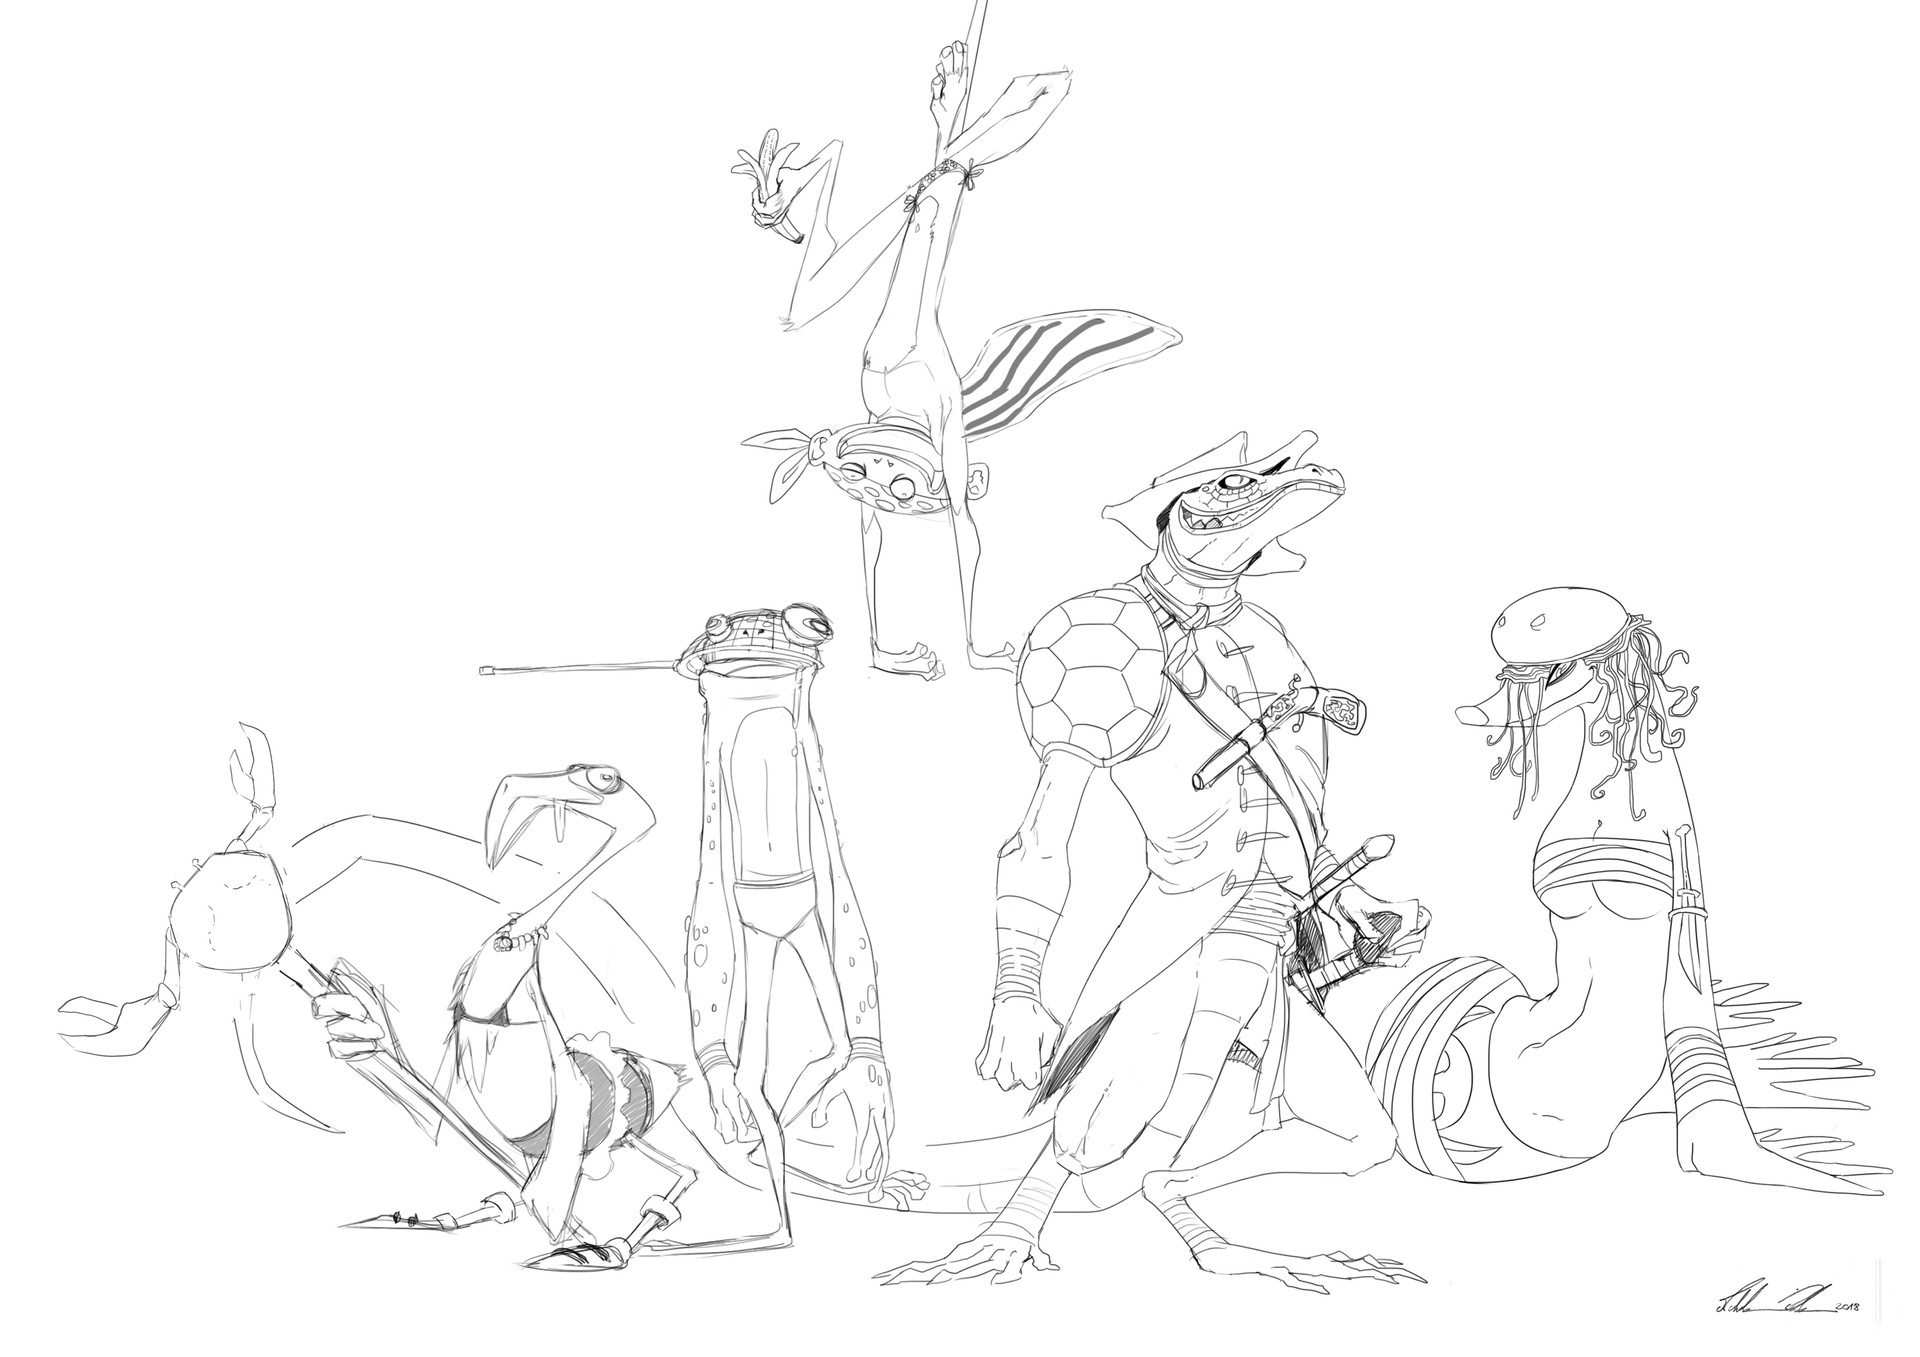 """A weird captain and his mad crew (lineart) - Michele """"Sheet"""" Poli"""